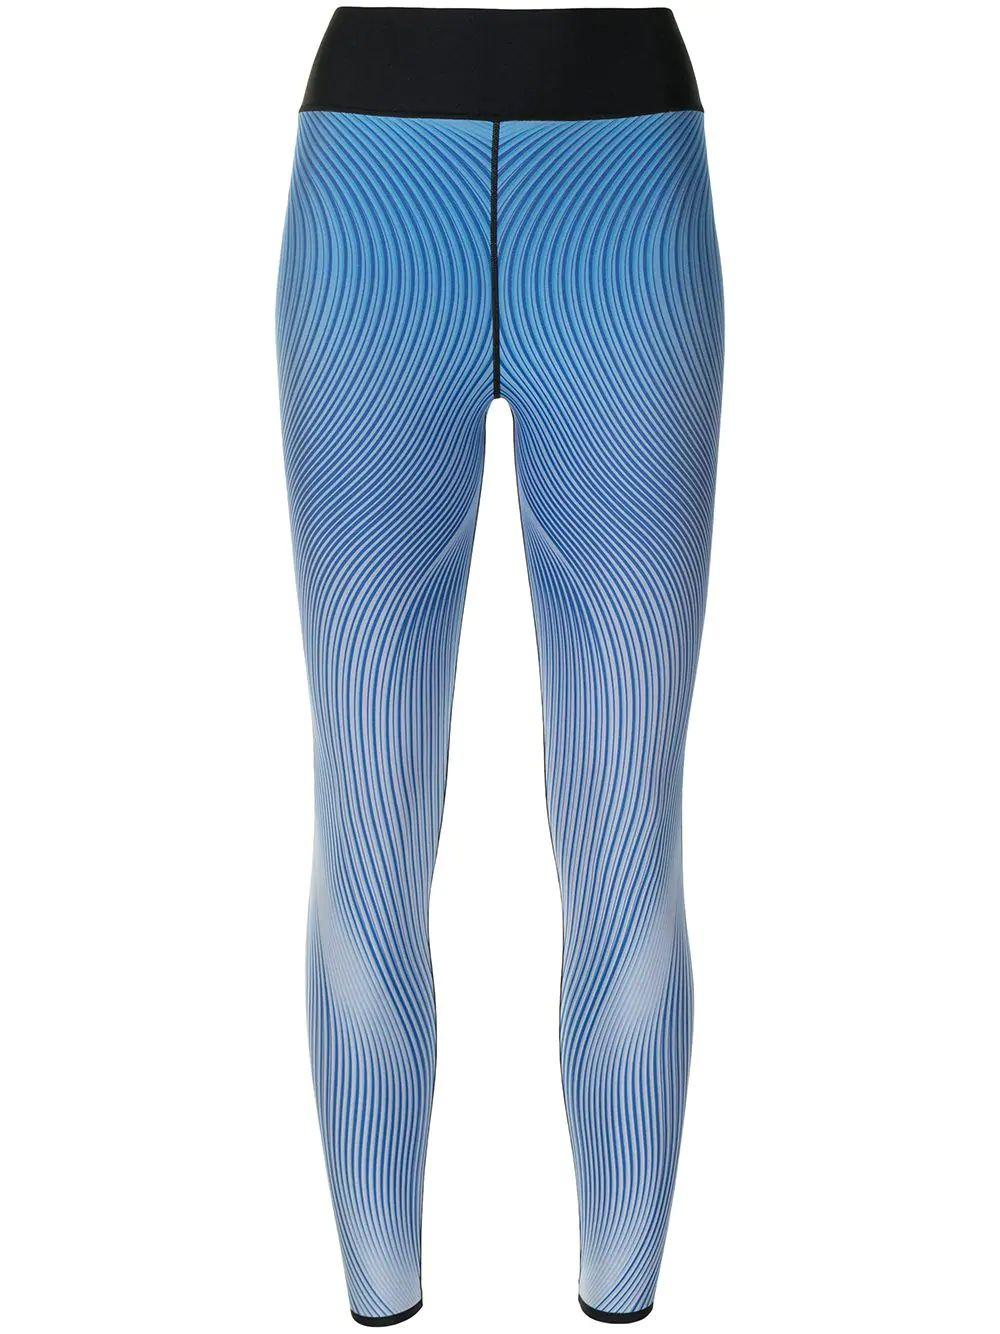 Ultra High Wave Leggings